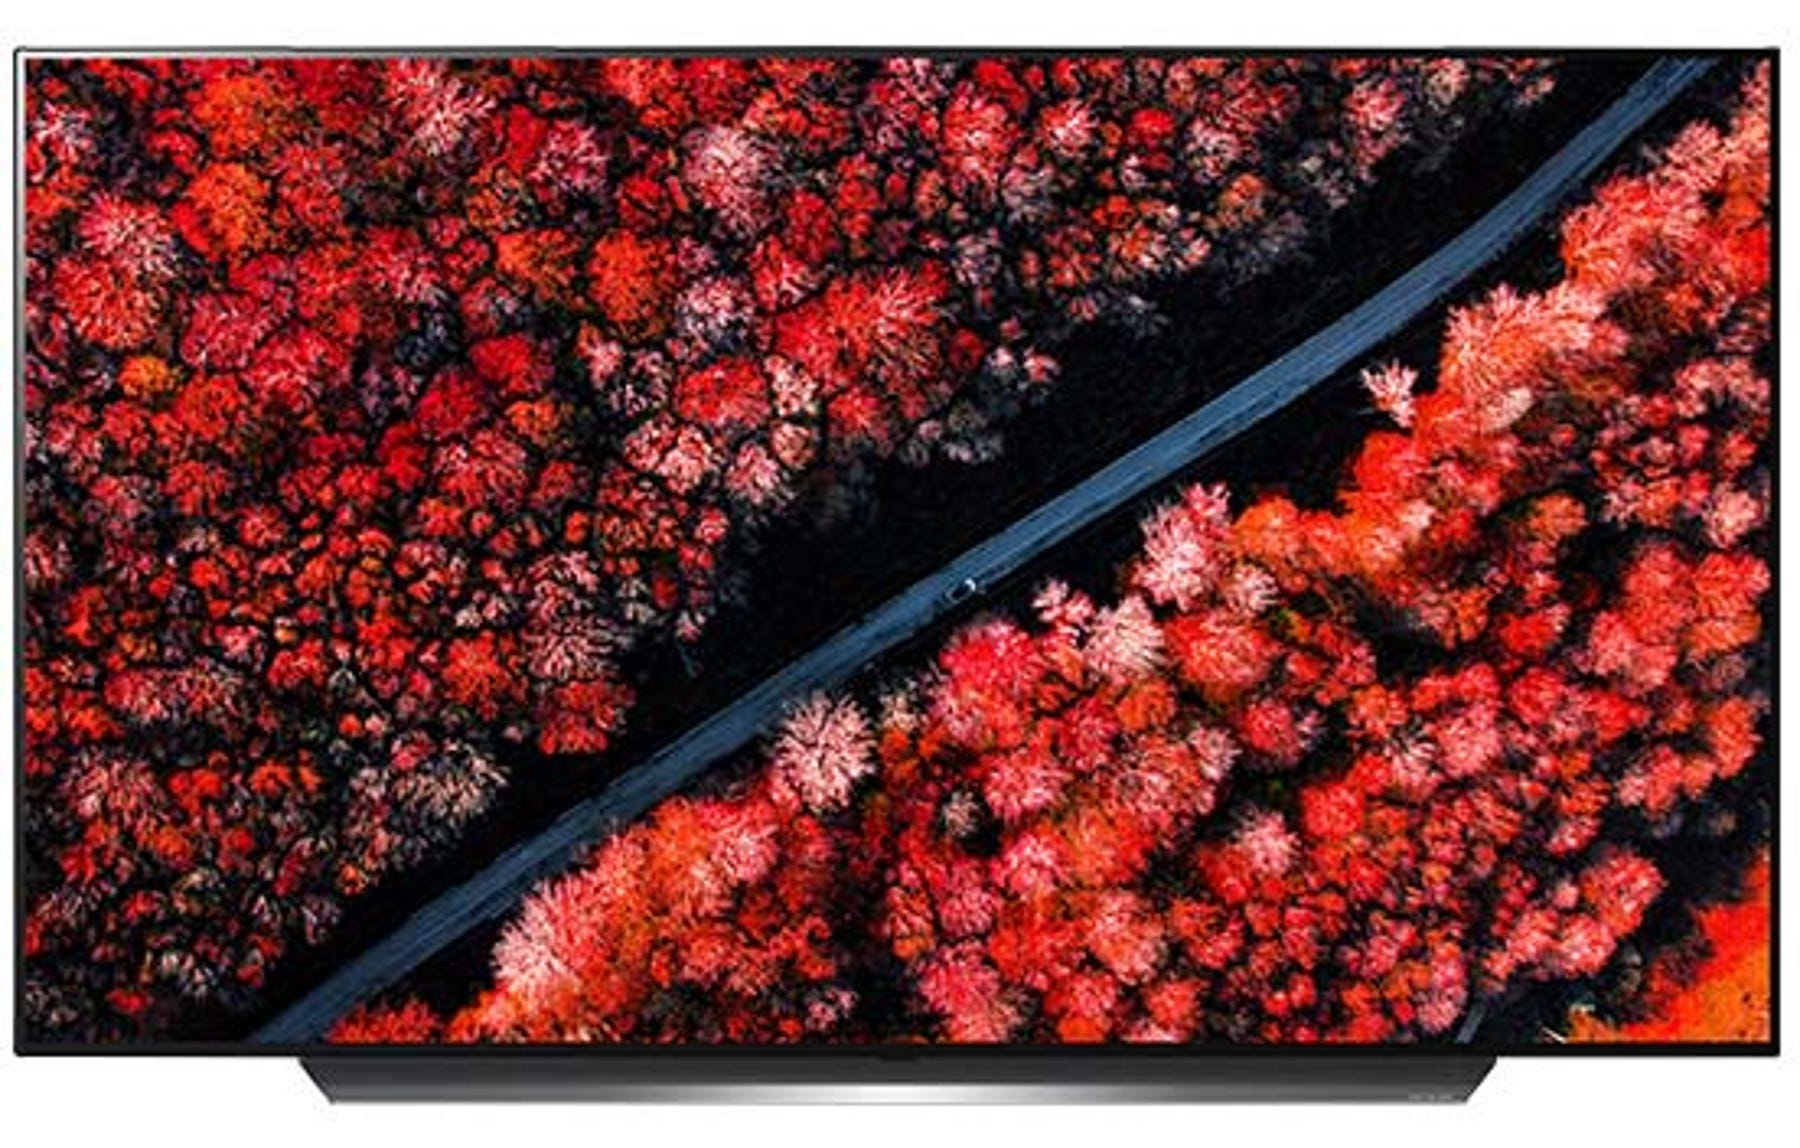 Televisions -Smart, Curved, HDTV, Flat Screen, LED, 4K